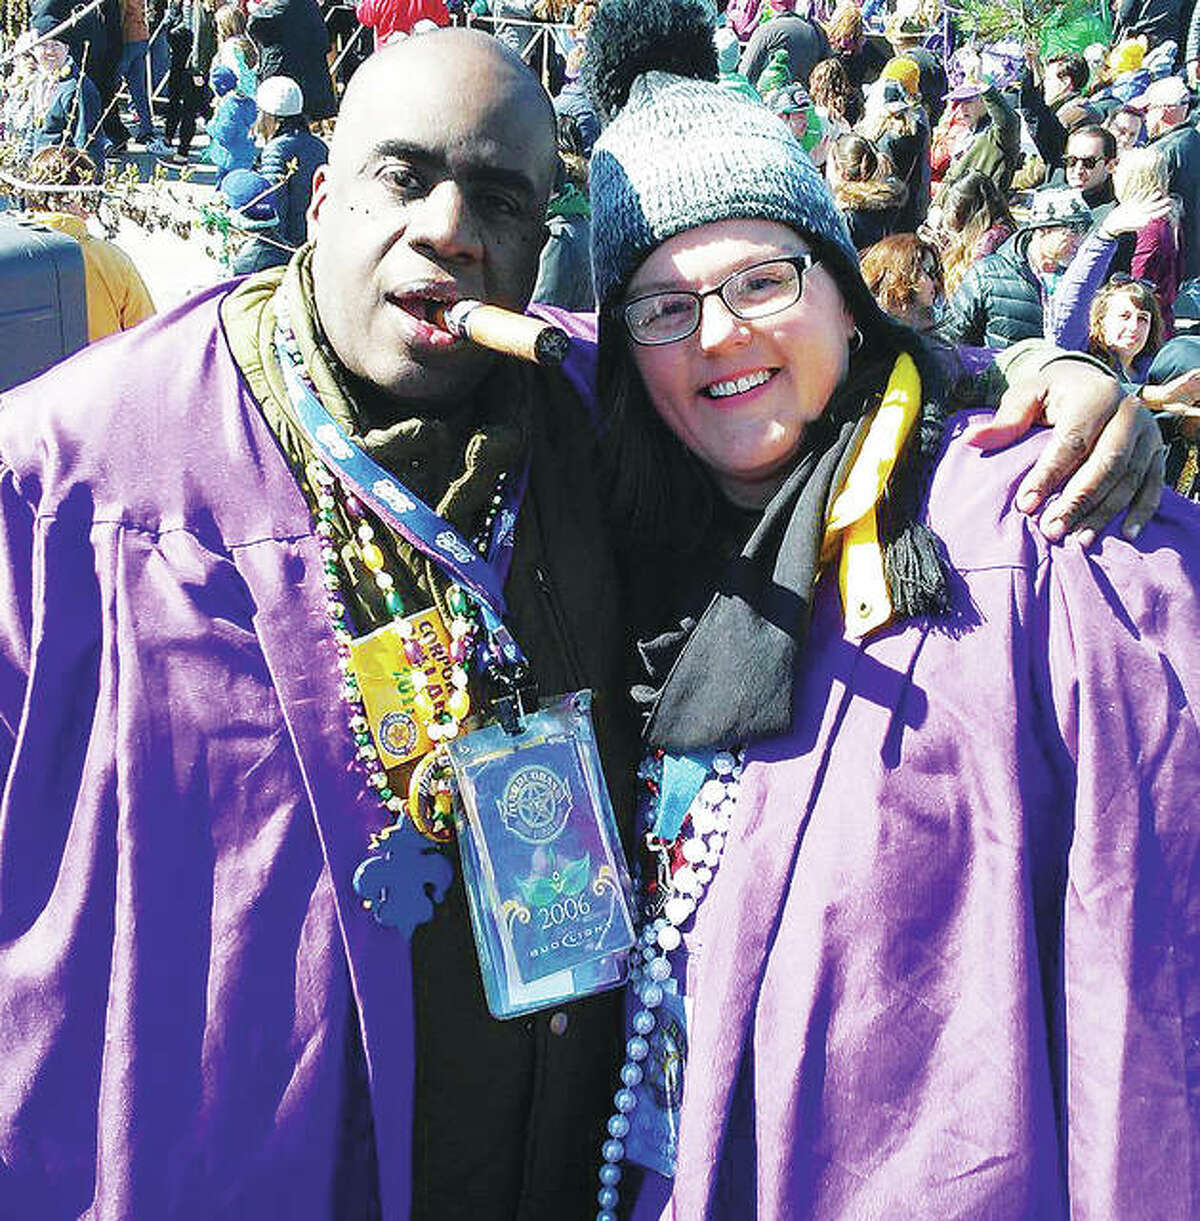 Alton's Ron Boles, left, originally from St. Louis, and his significant other and business partner, Jimi Jo Sinks, in 2006, wearing the purple robes of Soulard Mardi Gras' Bud Light Grand Parade judges. Boles has been a judge for the parade for at least the last consecutive 16 years. This year, he again will judge more than 100 parade floats Saturday at purportedly the second biggest Mardi Gras celebration in the world in St. Louis' Soulard neighborhood. Sinks has often joined Boles as a Grand Parade official judge over the last 10 years. Judging takes up to four hours to complete.